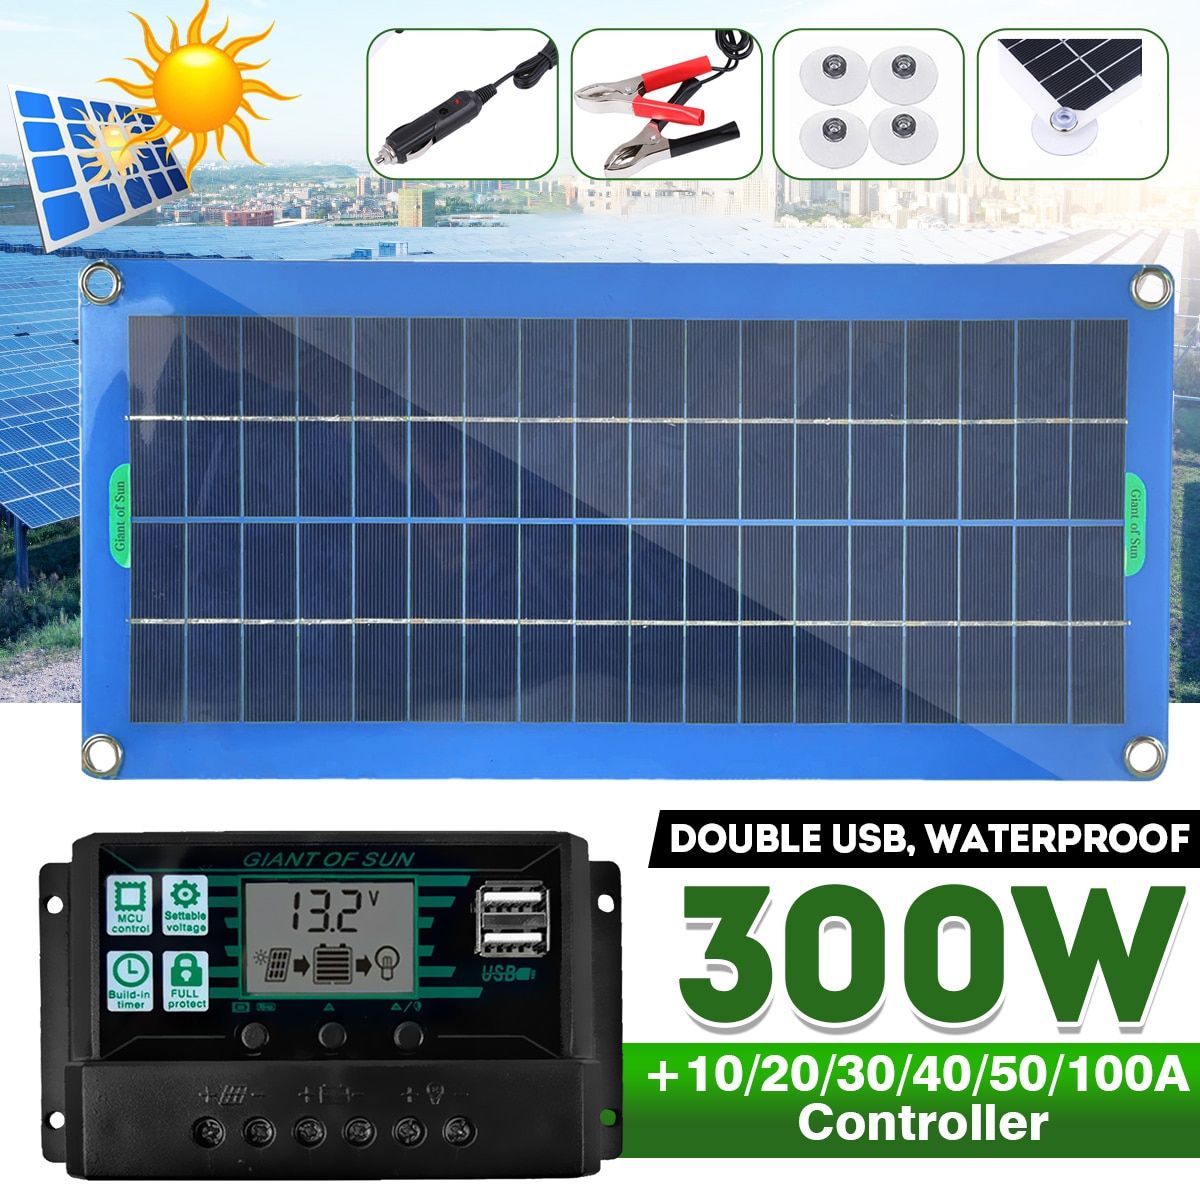 300W Solar Panel Kit Complete Dual 12/5V DC USB With 60A/100A Solar Controller Solar Cells for Car Yacht RV Battery Charger